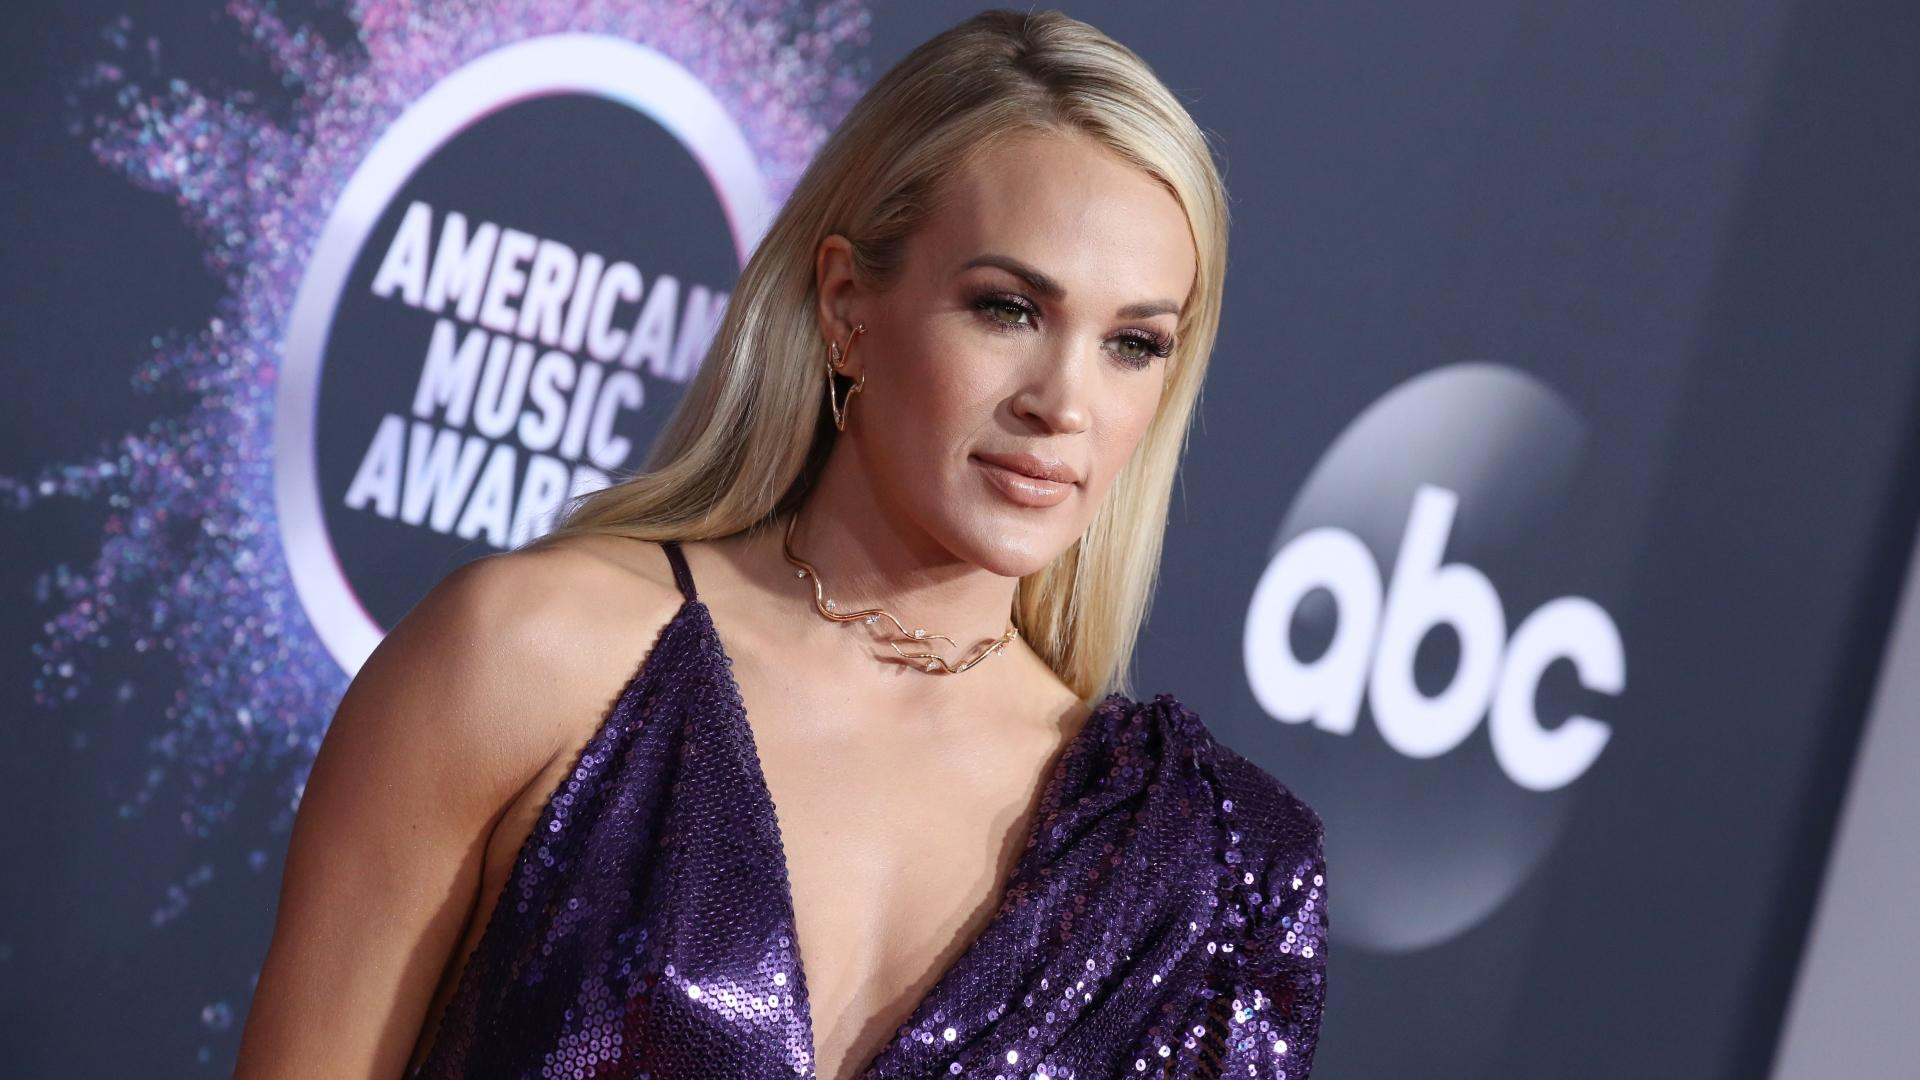 Carrie Underwood Says Her Family Hid in a Safe Room During Deadly Nashville Tornado - Yahoo Entertainment